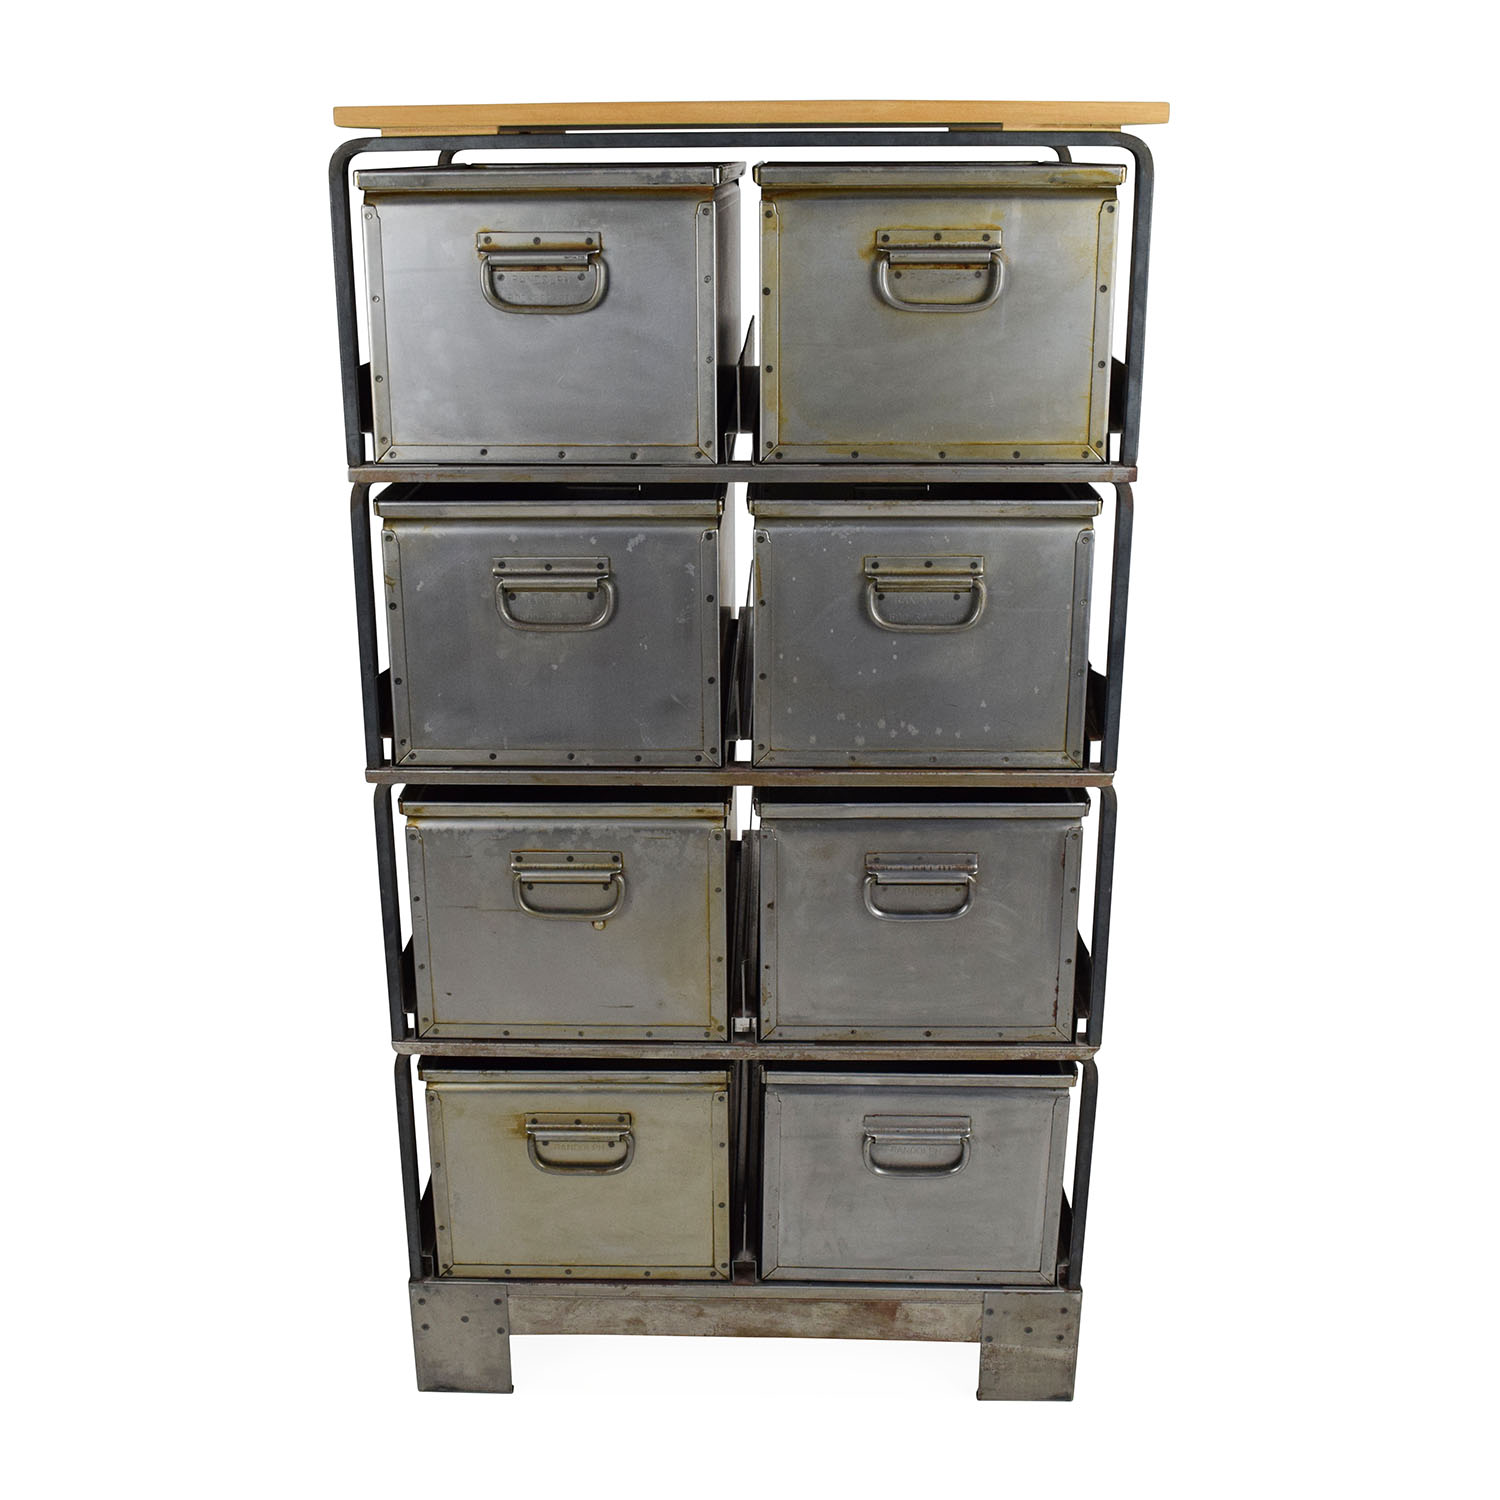 Unknown Brand Metal Storage Bins Price